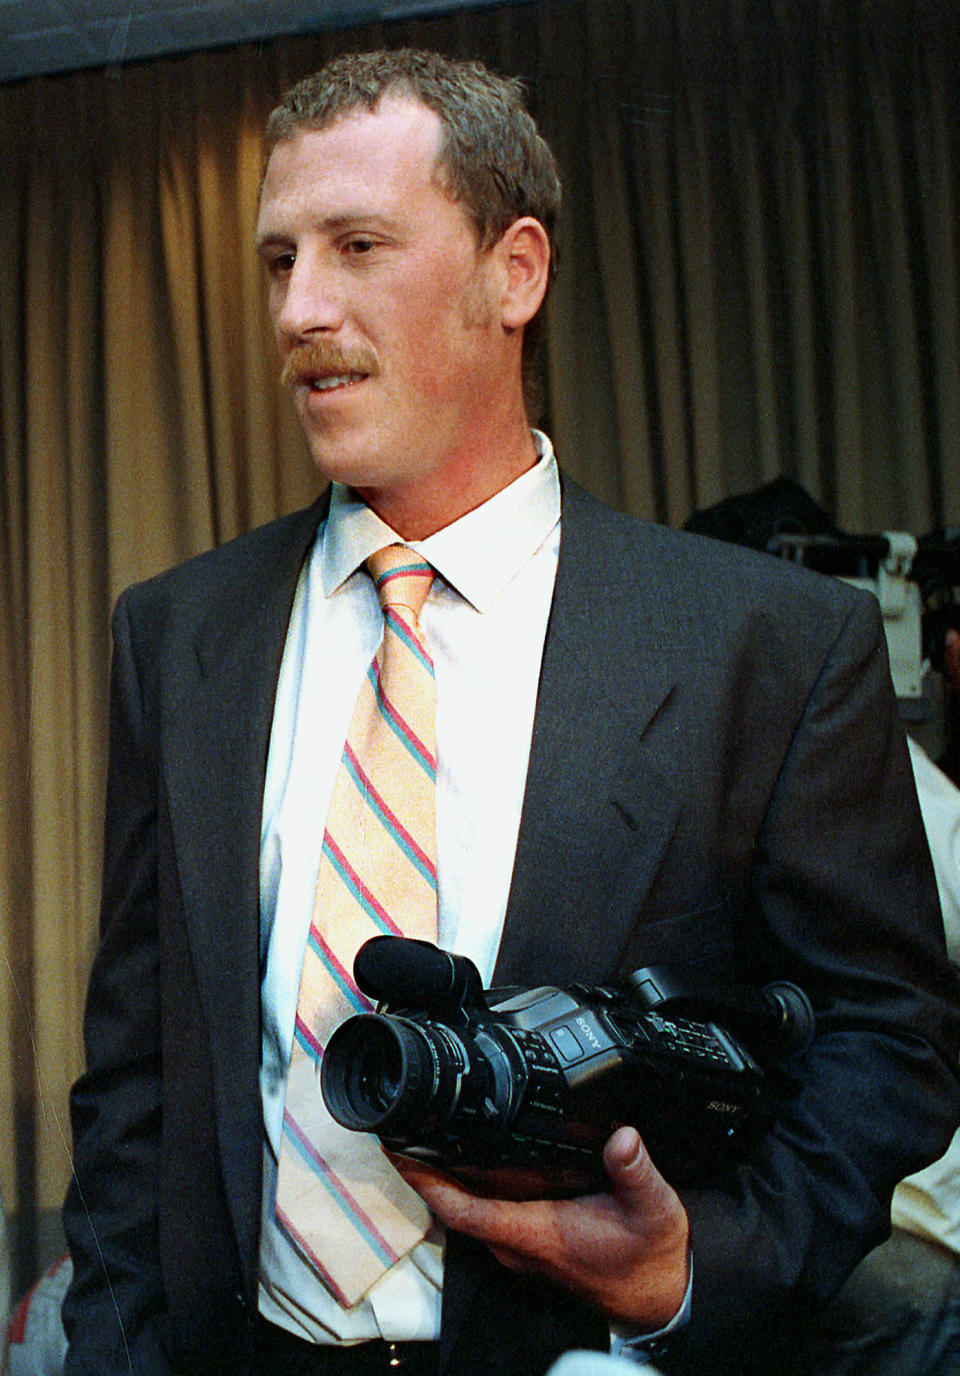 FILE - In this March 28, 1991, file photo, George Holliday, the man who videotaped the beating of Black motorist Rodney King by four Los Angeles Police Department officers, holds his camera after a news conference, in Los Angeles. Holliday has died from COVID-19, it was reported Monday, Sept. 20, 2021. (AP Photo/Craig Fujii, File)